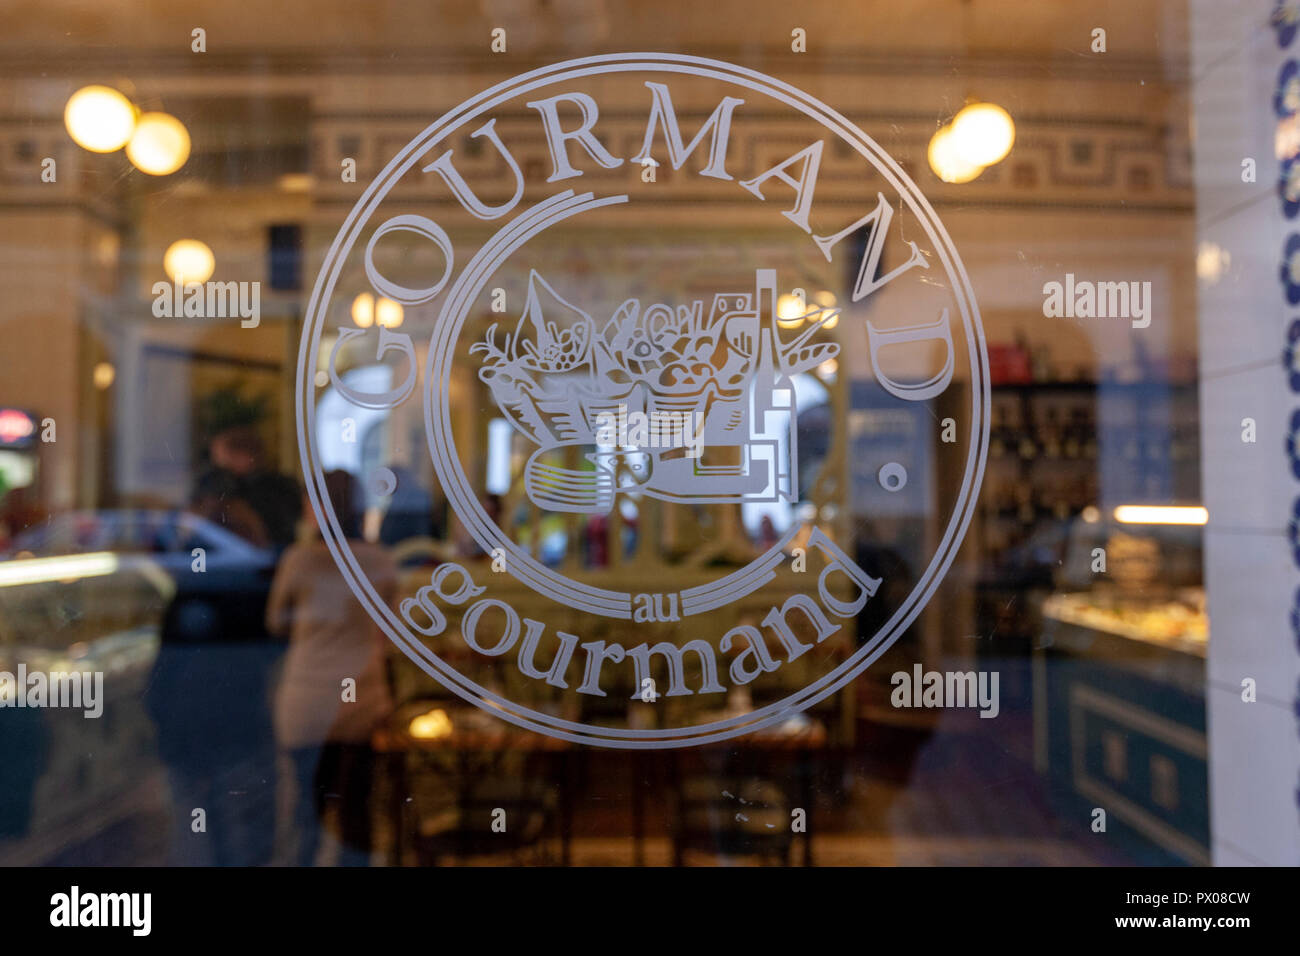 au Gourmand showcase glass engraved, Bohemian style deco, Bakeries in Dlouha 614/10, Prague, Czech Republic. - Stock Image